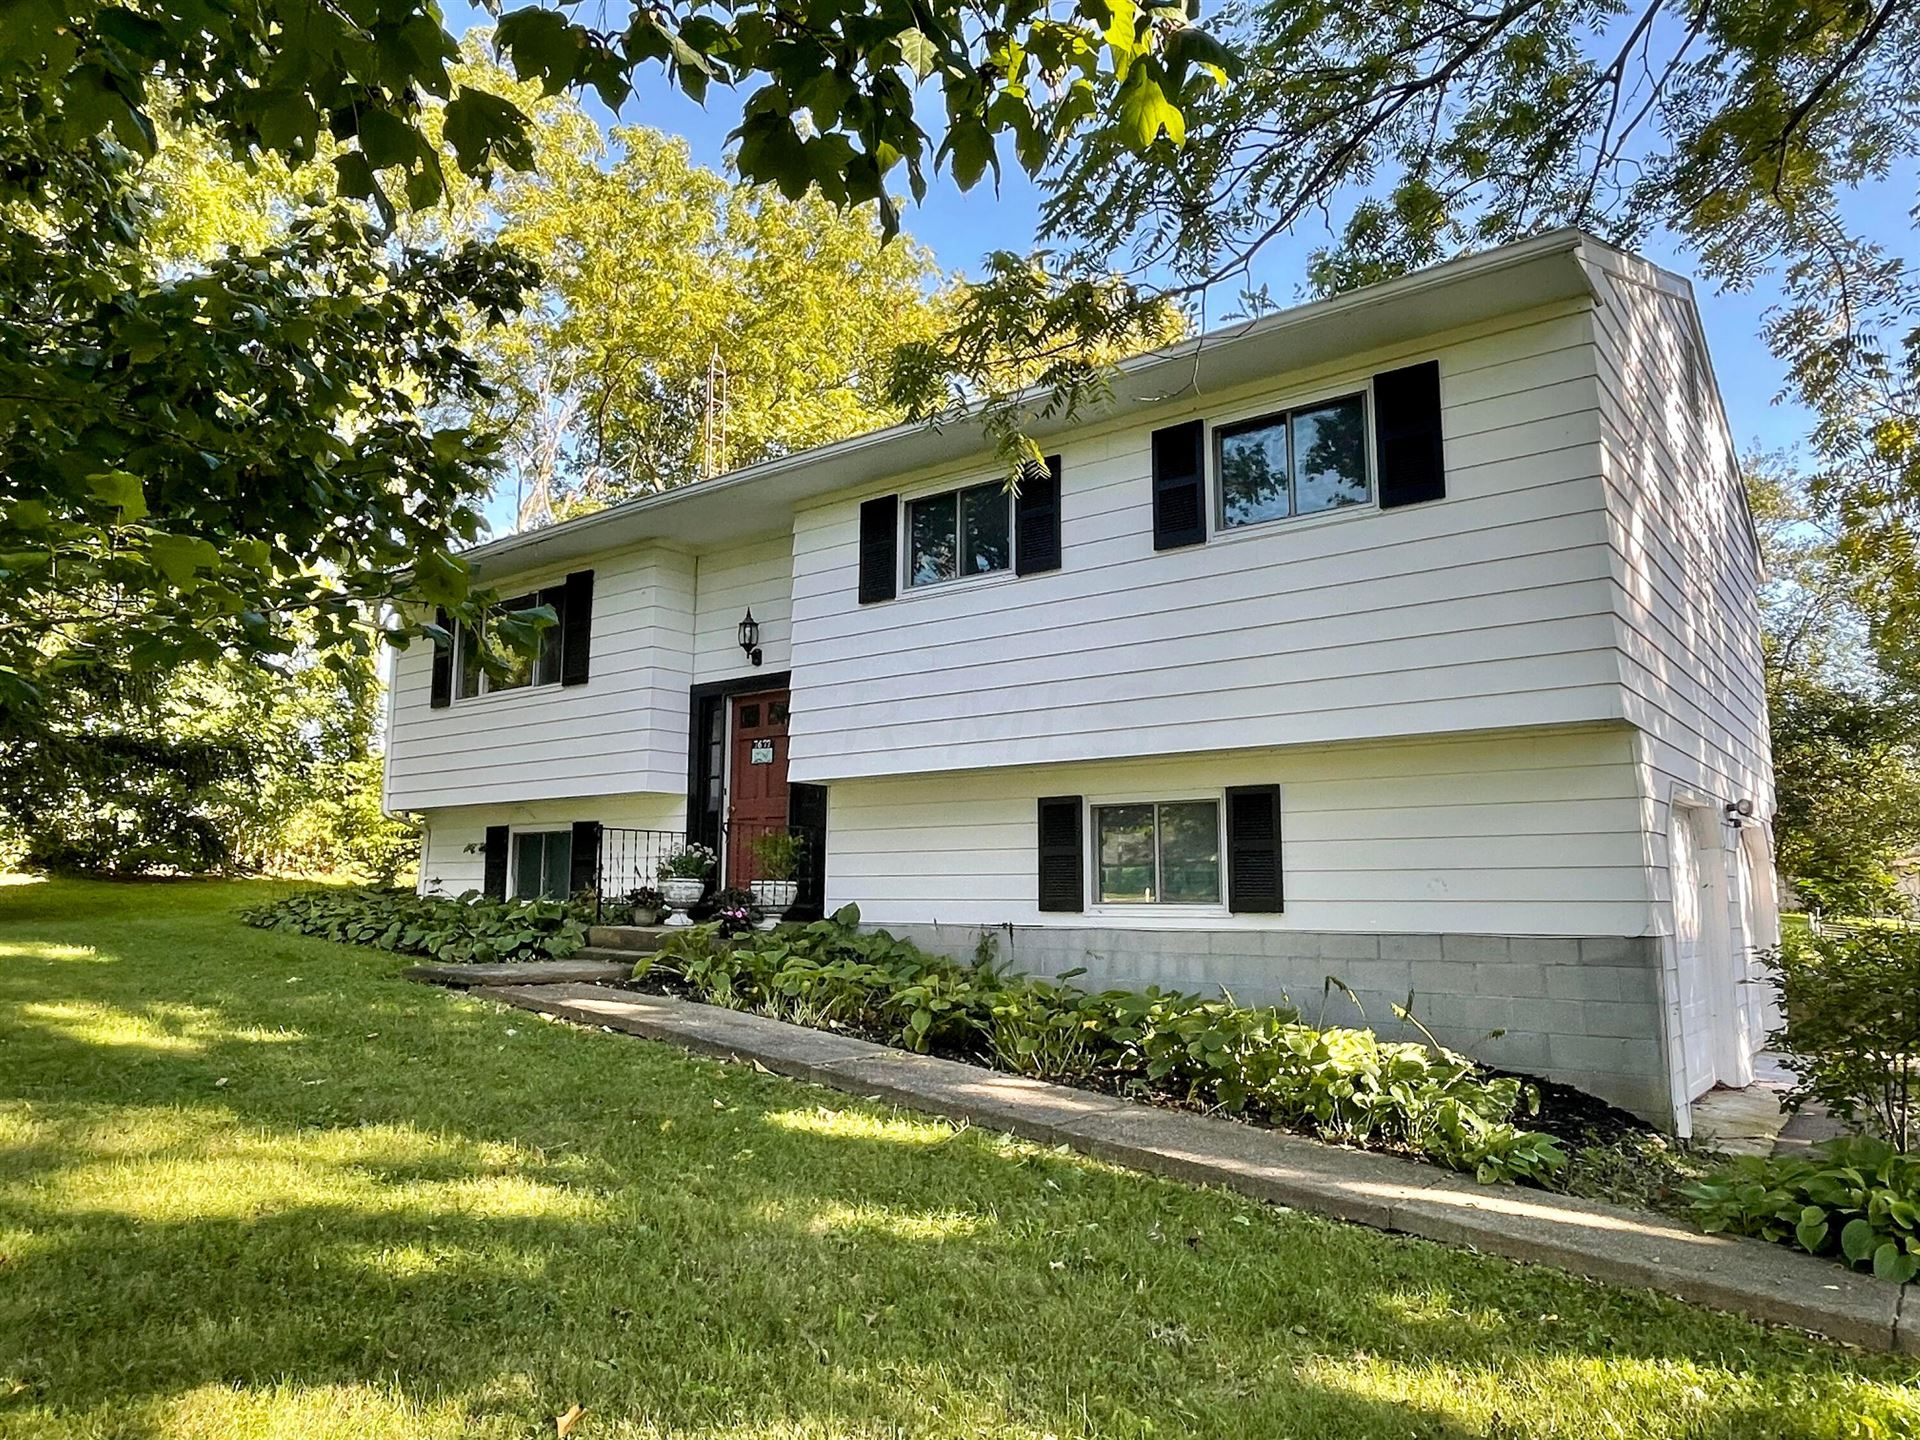 Photo of 7677 Central College Road, New Albany, OH 43054 (MLS # 221038251)